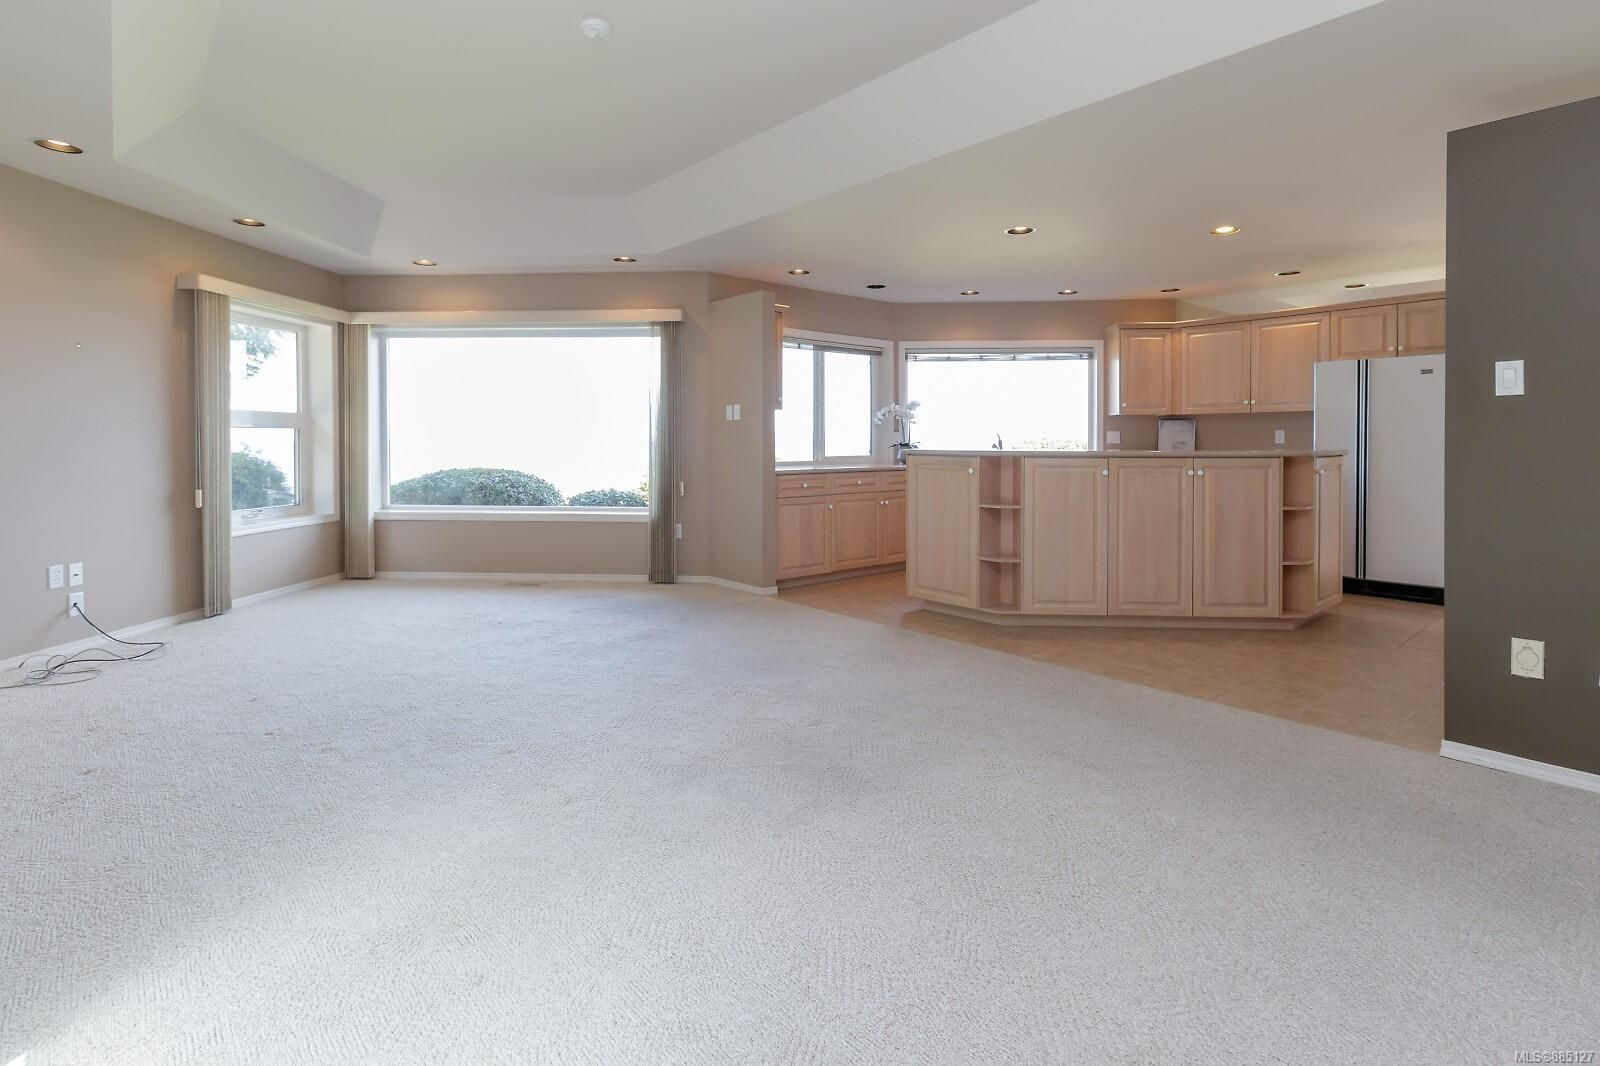 Photo 22: Photos: 26 529 Johnstone Rd in : PQ French Creek Row/Townhouse for sale (Parksville/Qualicum)  : MLS®# 885127